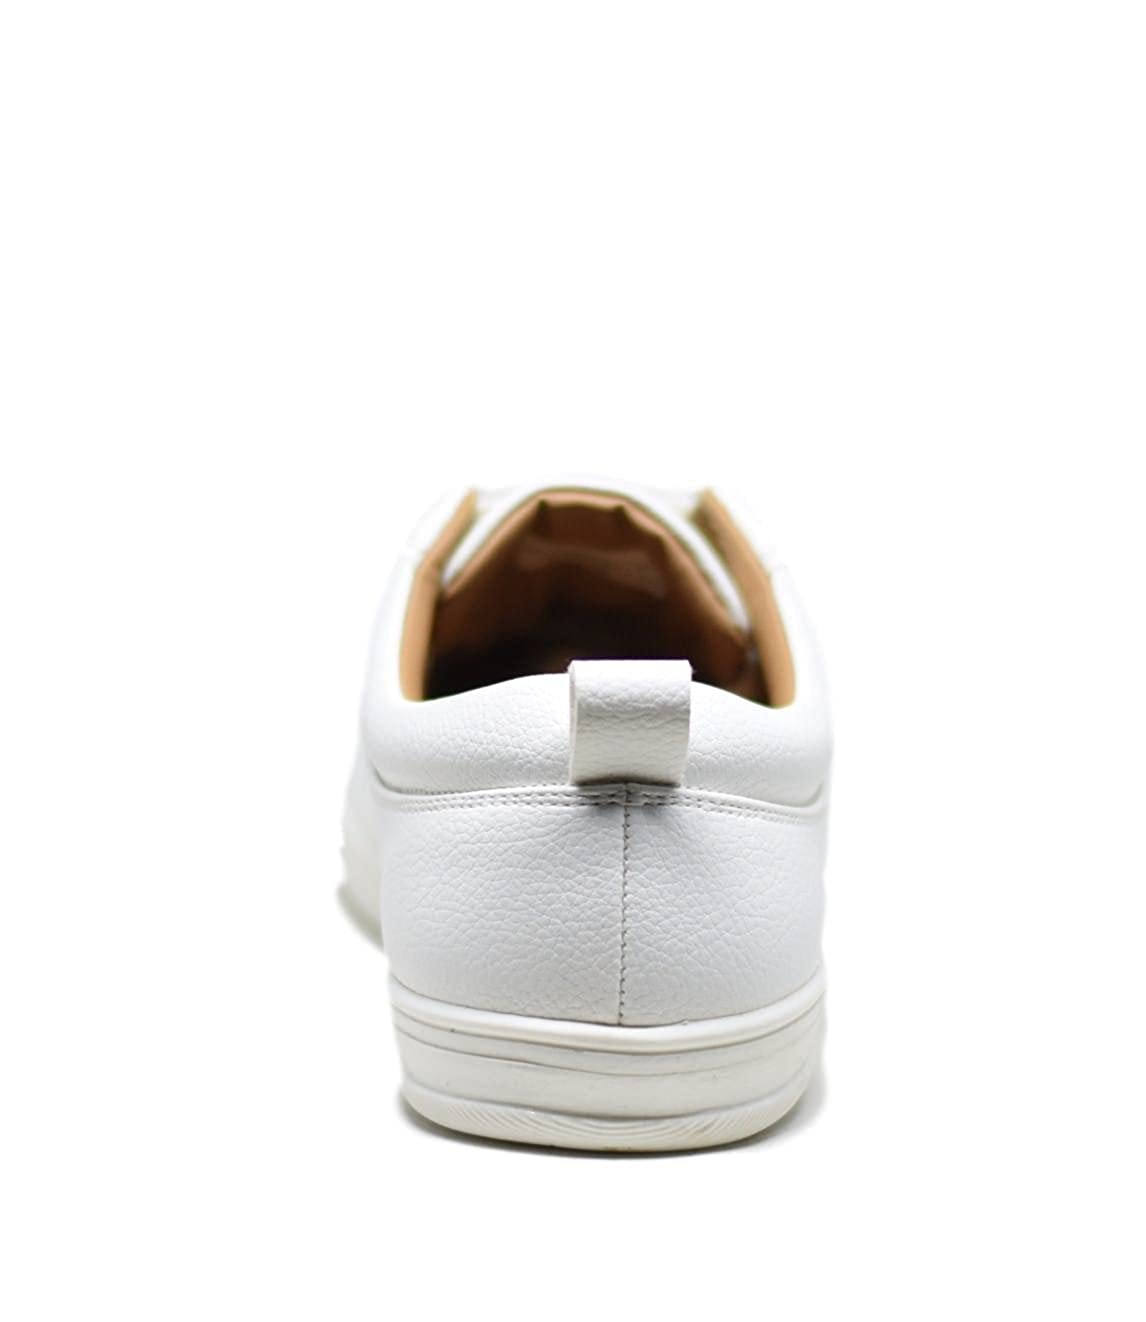 a71e01afe9bb9 Doc Martin Zurik White Sneakers - 7  Buy Online at Low Prices in India -  Amazon.in